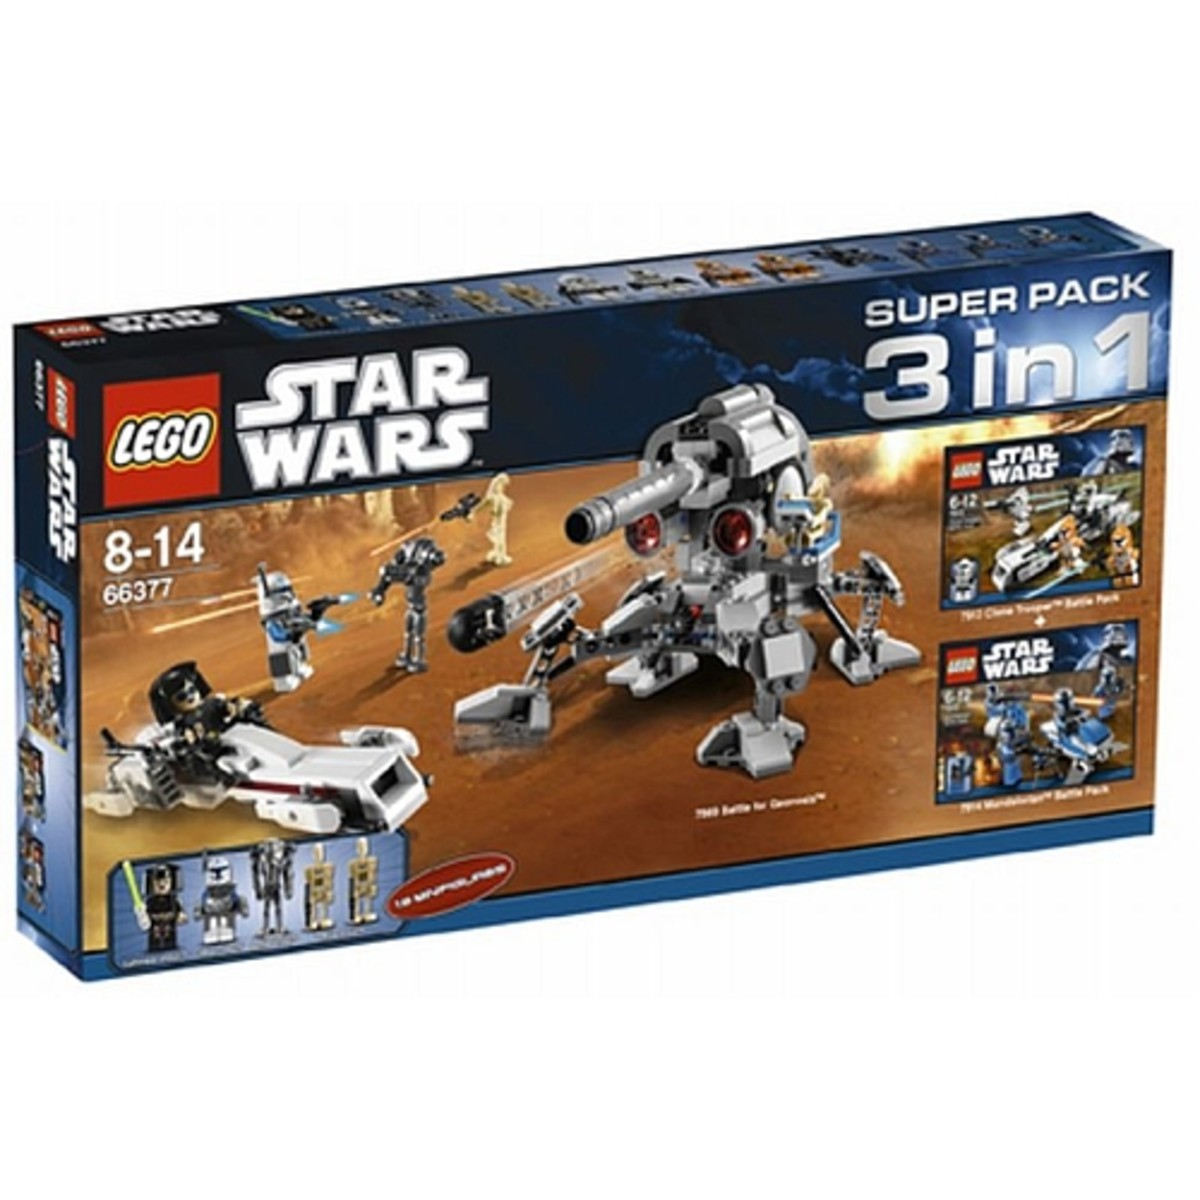 LEGO Star Wars 3 in 1 Super Pack # 66377 Box